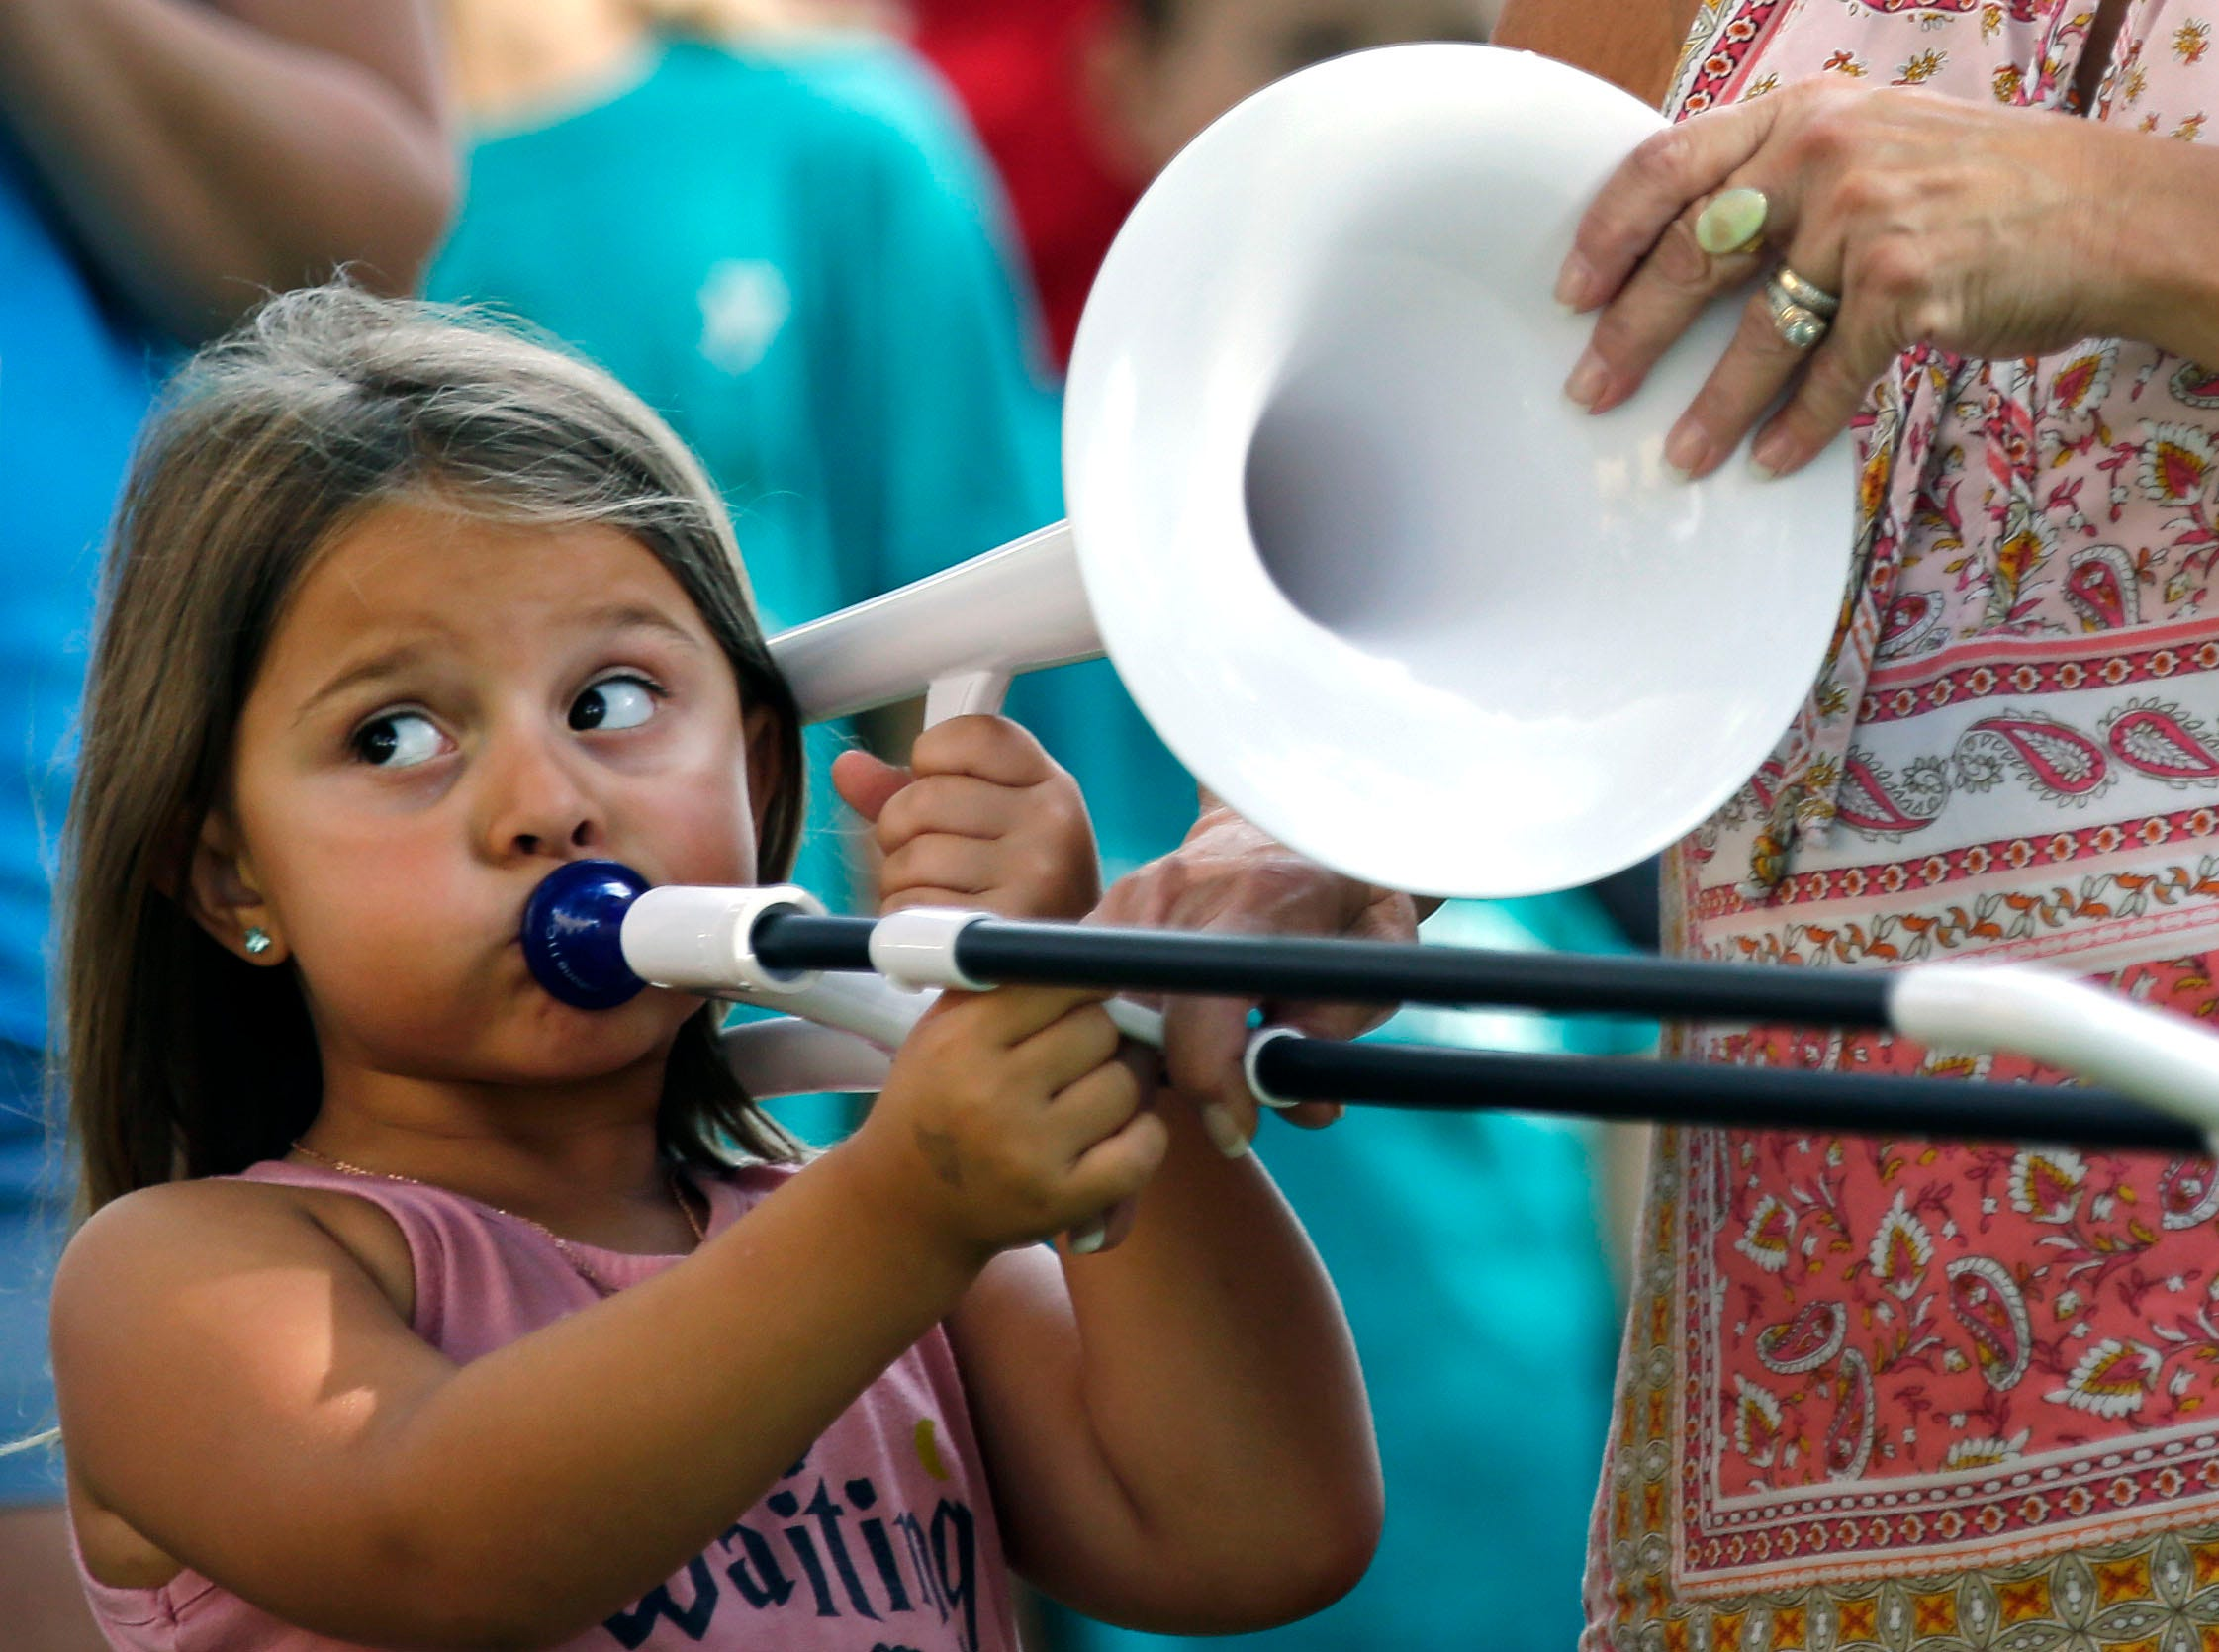 Elena Fiebelkorn gets helps holding the trombone from her grandmother, Suzi Perlewitz as Mile 6, the Mile of Music festival takes place Saturday, August 4, 2018, in Appleton, Wis.Ron Page/USA TODAY NETWORK-Wisconsin